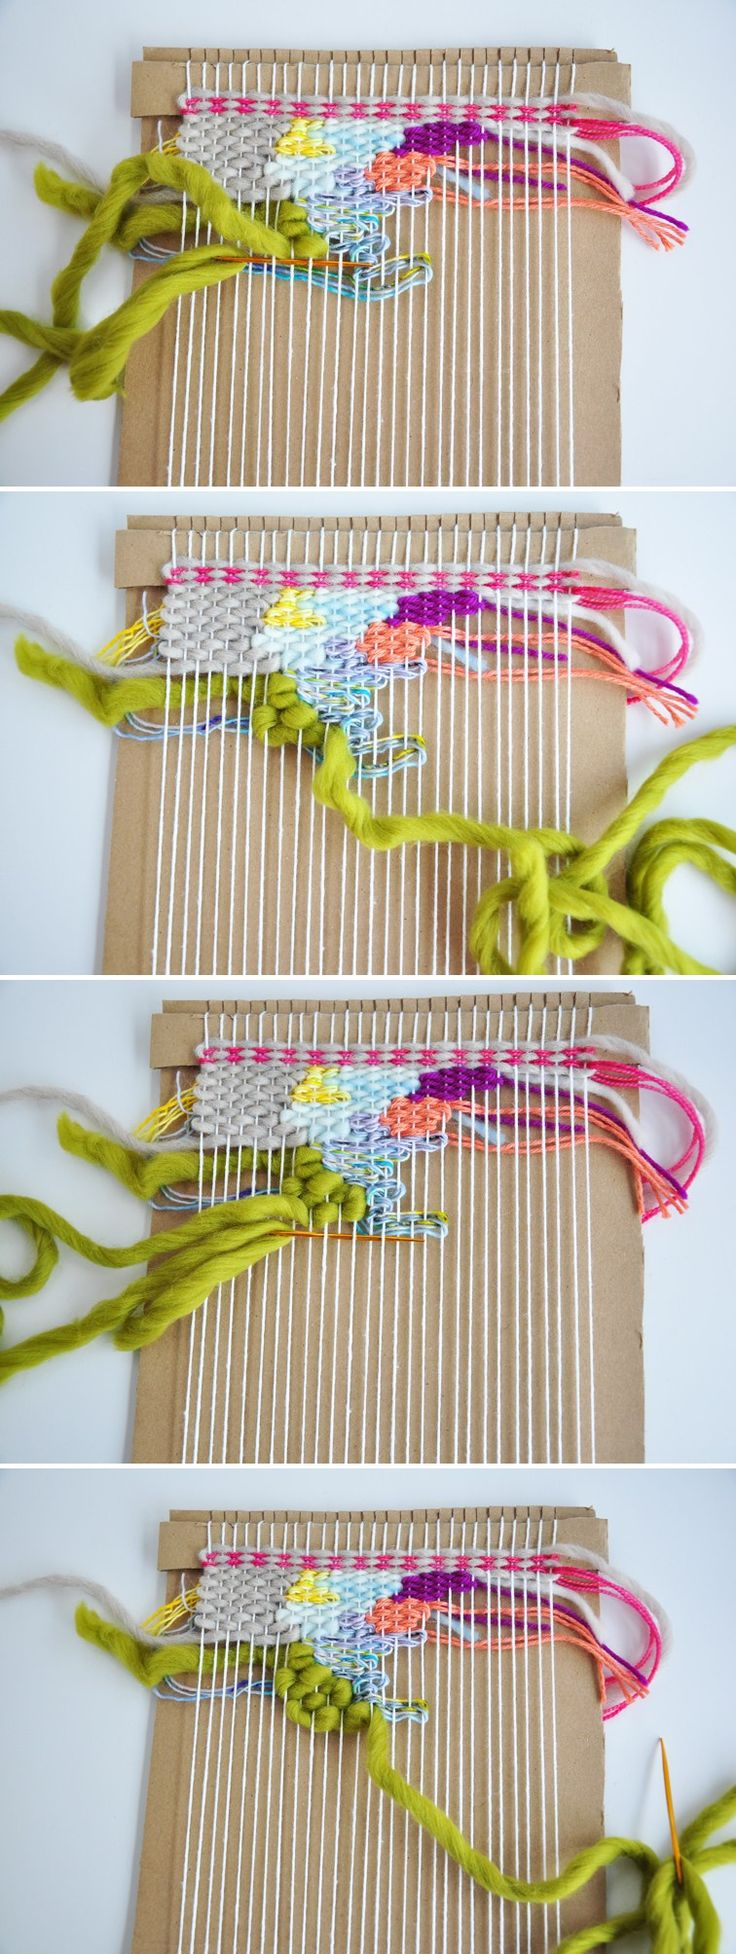 This fun weaving technique is great for beginners or if you need to work out of a creative block. Theres also a video!